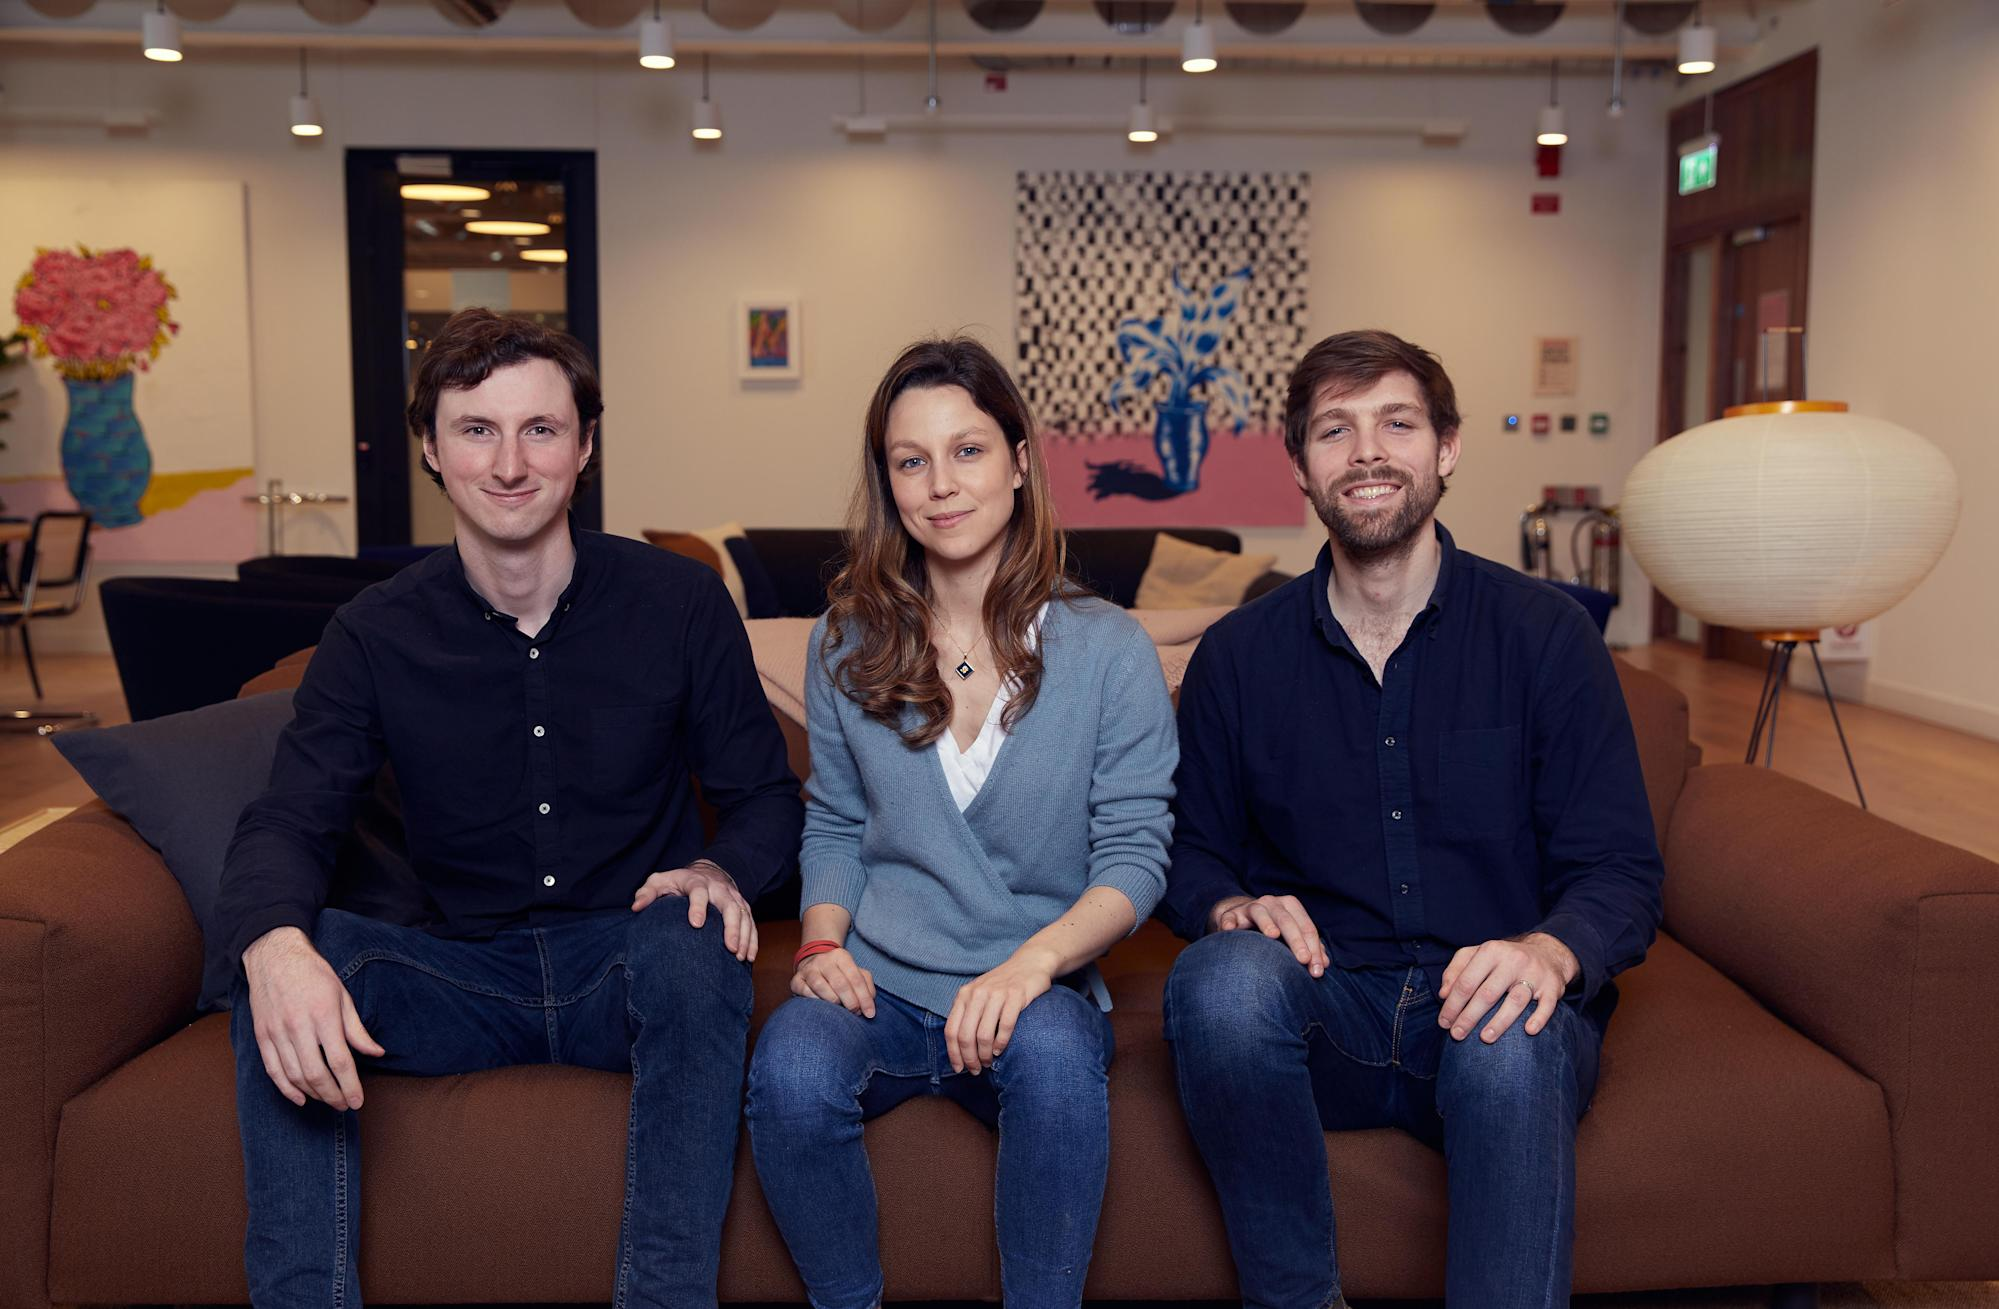 Sano Genetics, a startup helping with Long COVID research, raises £2.5M in seed funding